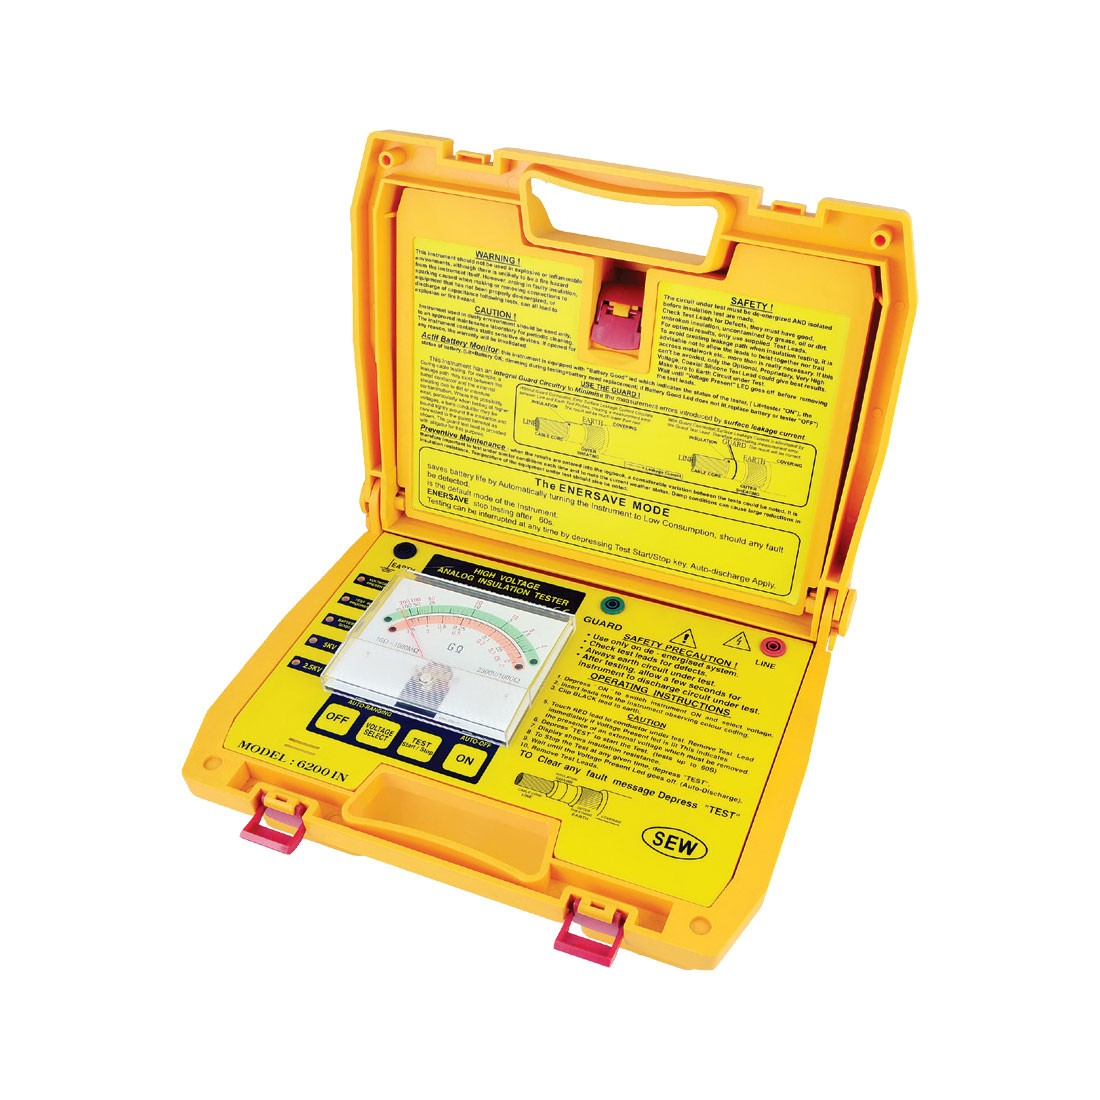 6200IN Analogue (Up to 5kV) Insulation Tester